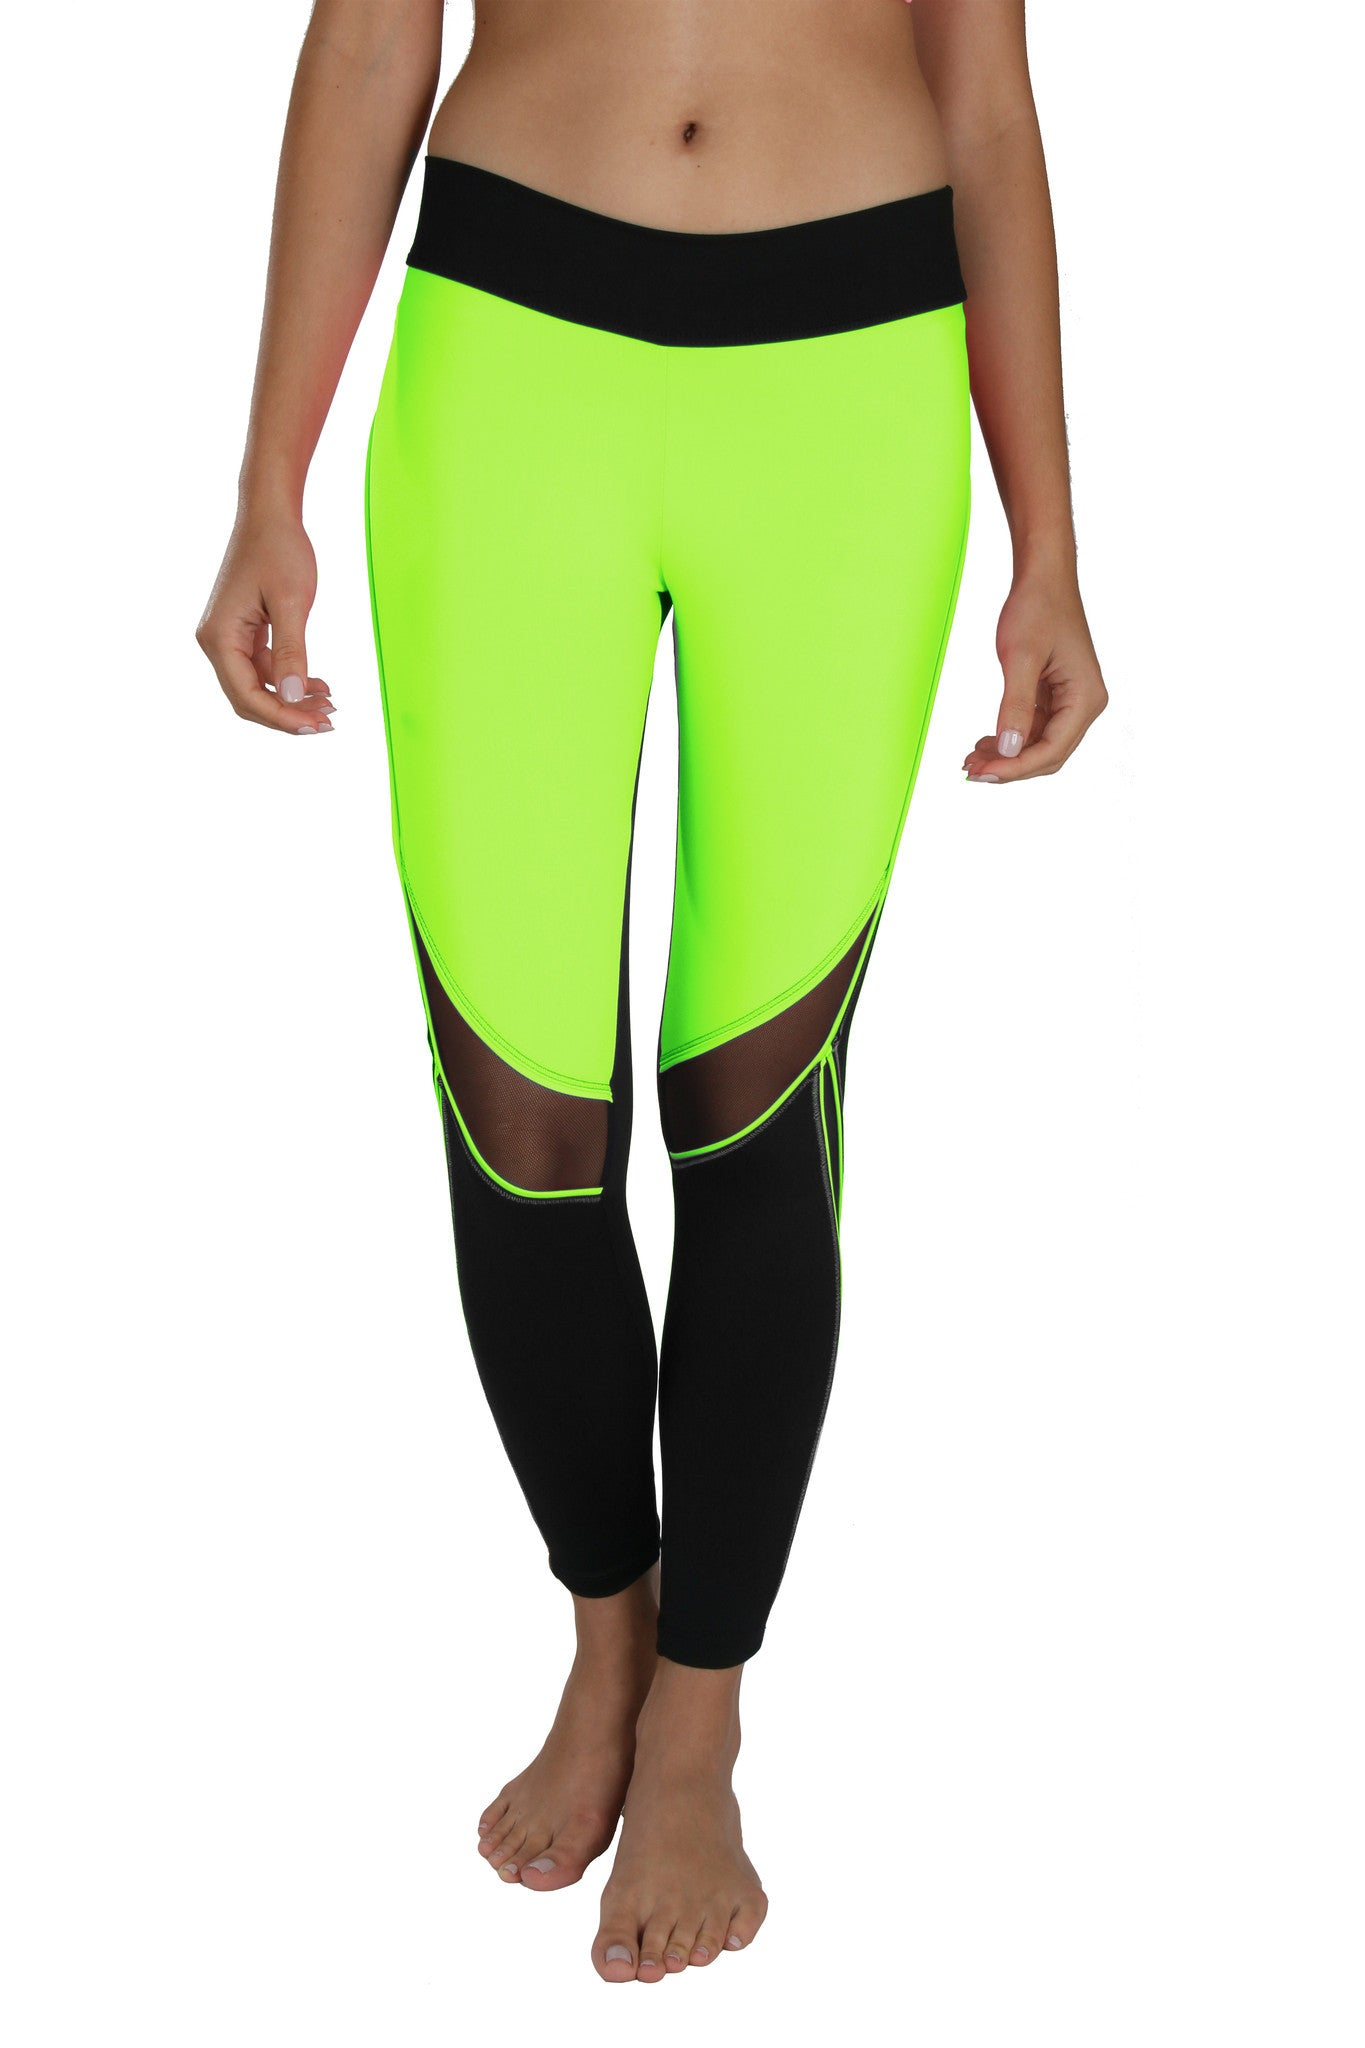 Trish Mesh Neon - Leggings - Butterfly Armor